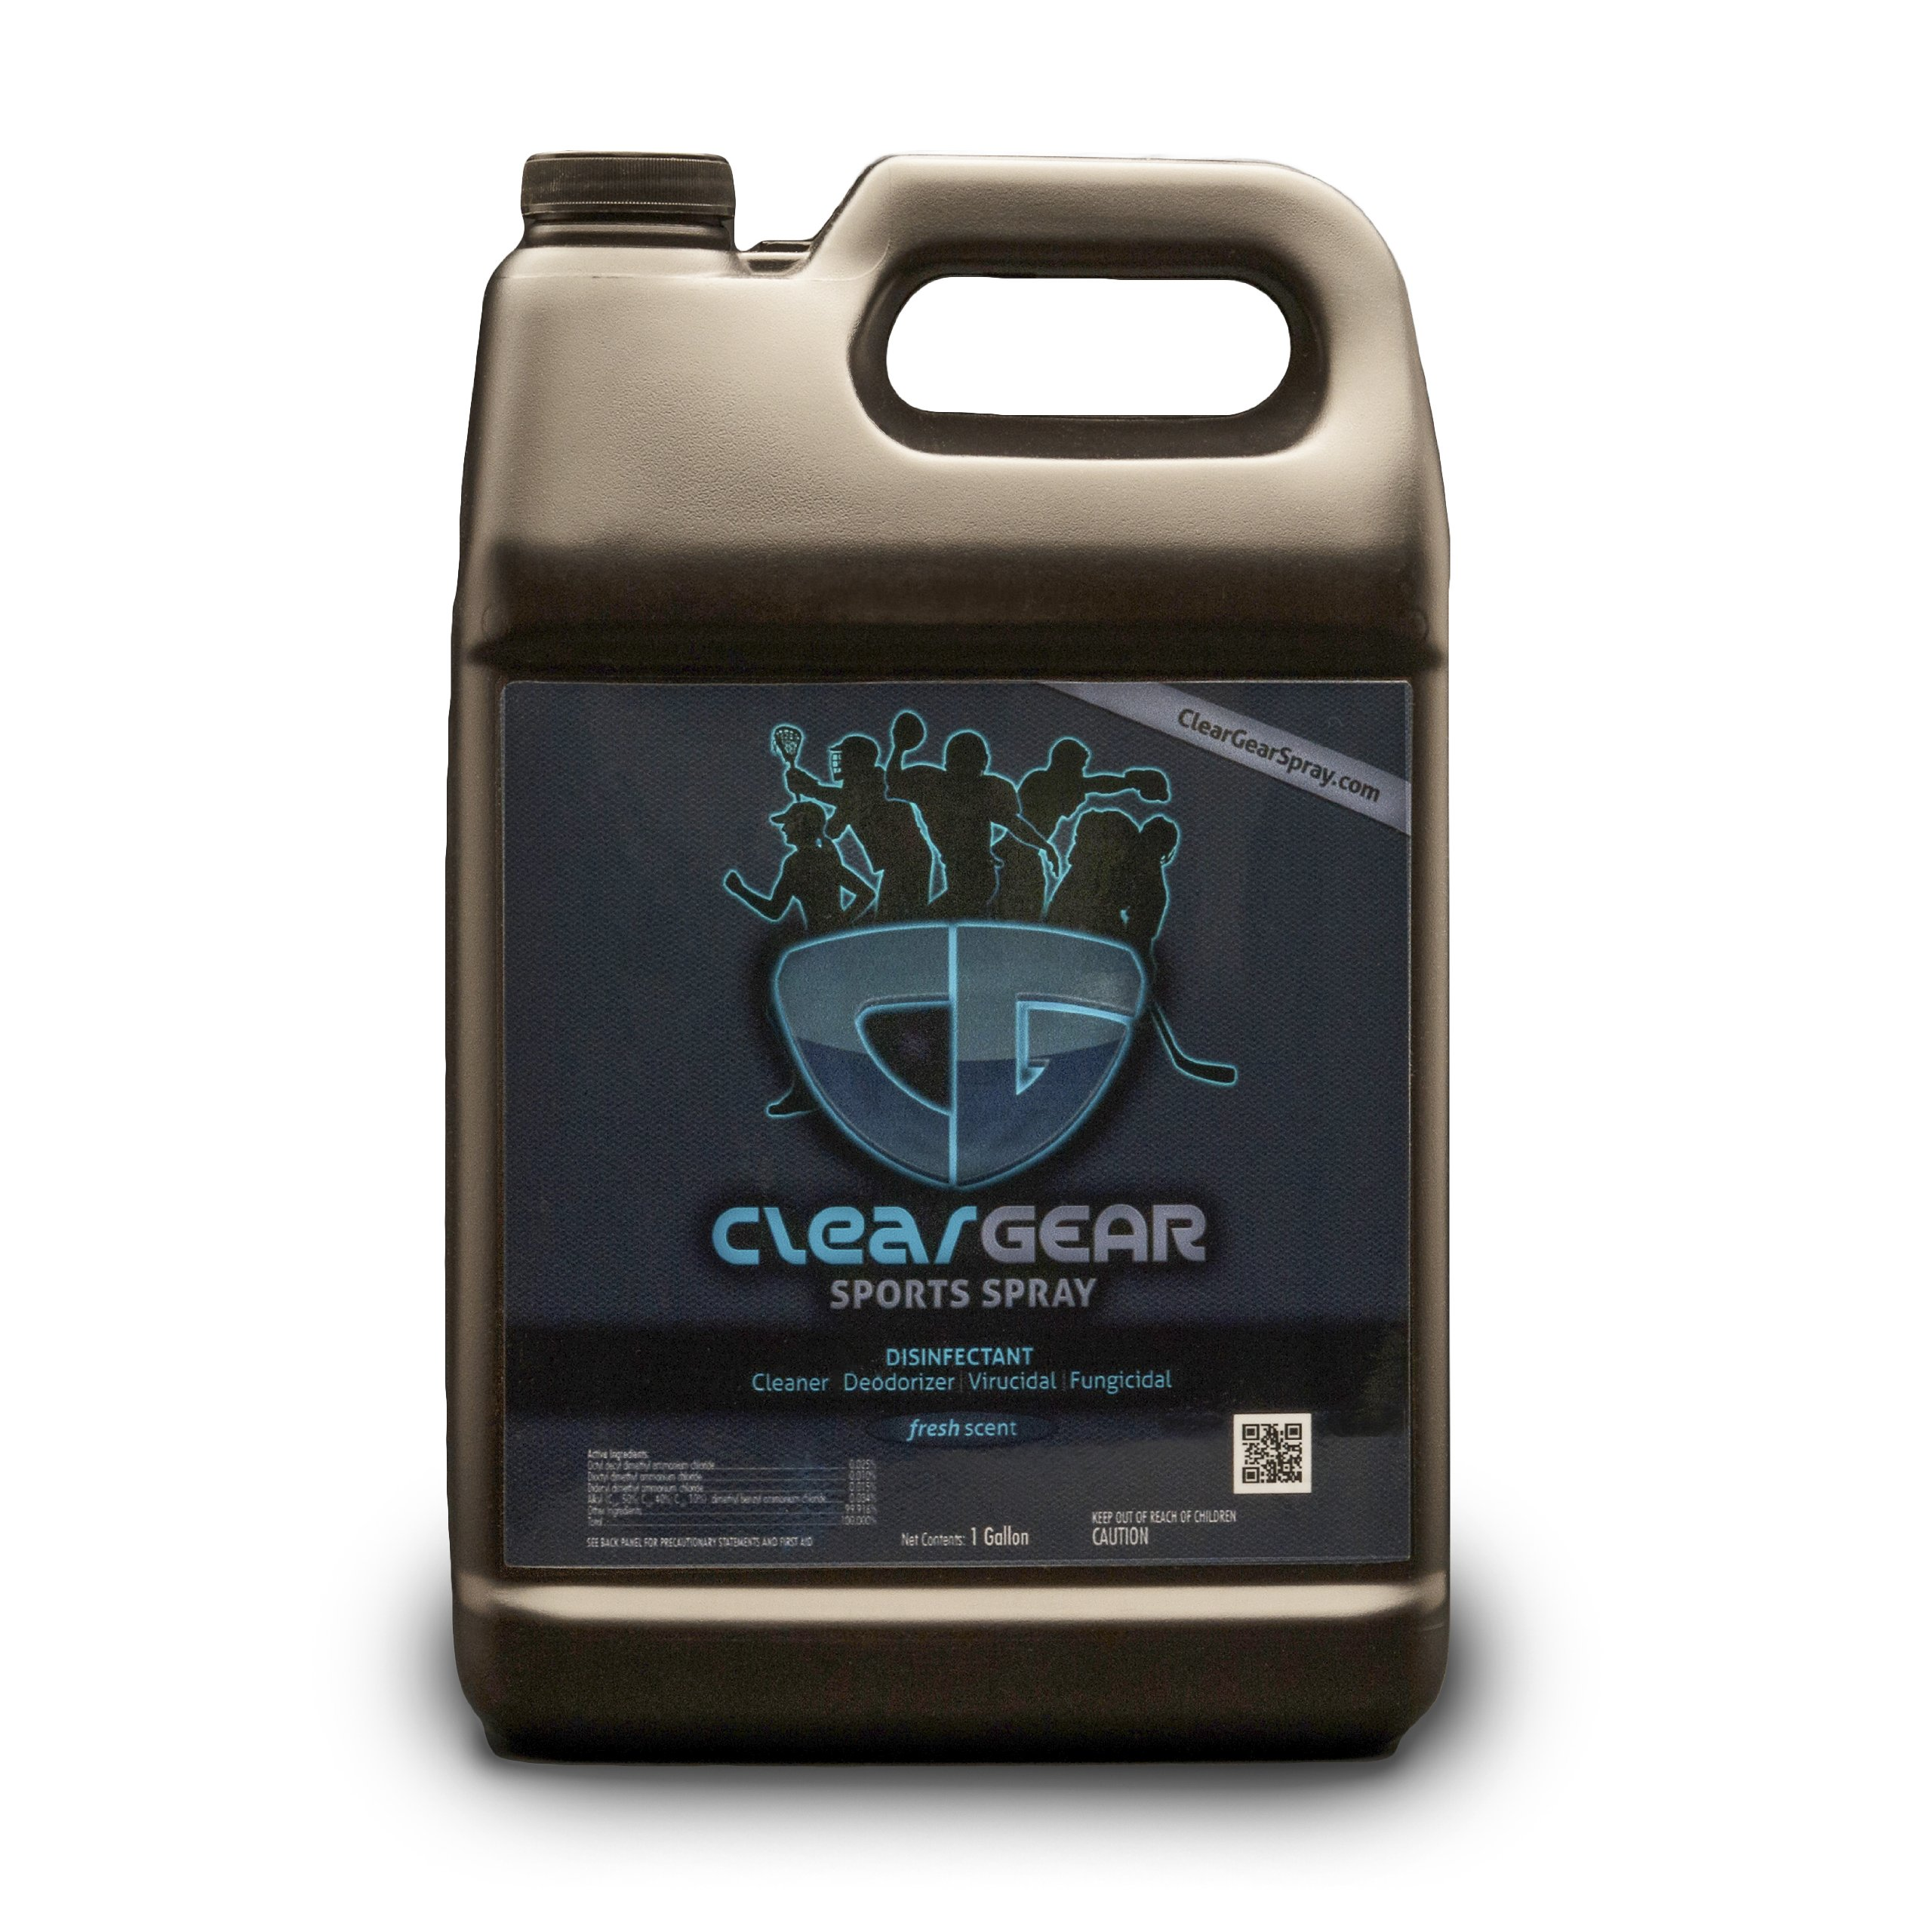 Clear Gear Sports Spray Case (6 Count) of 1 Gallon Bottles -  Disinfecting and Deodorizing Spray Kills MRSA, Staph and Strep and Eliminates the Funk in Athletic Facilities, Gyms and Training Centers